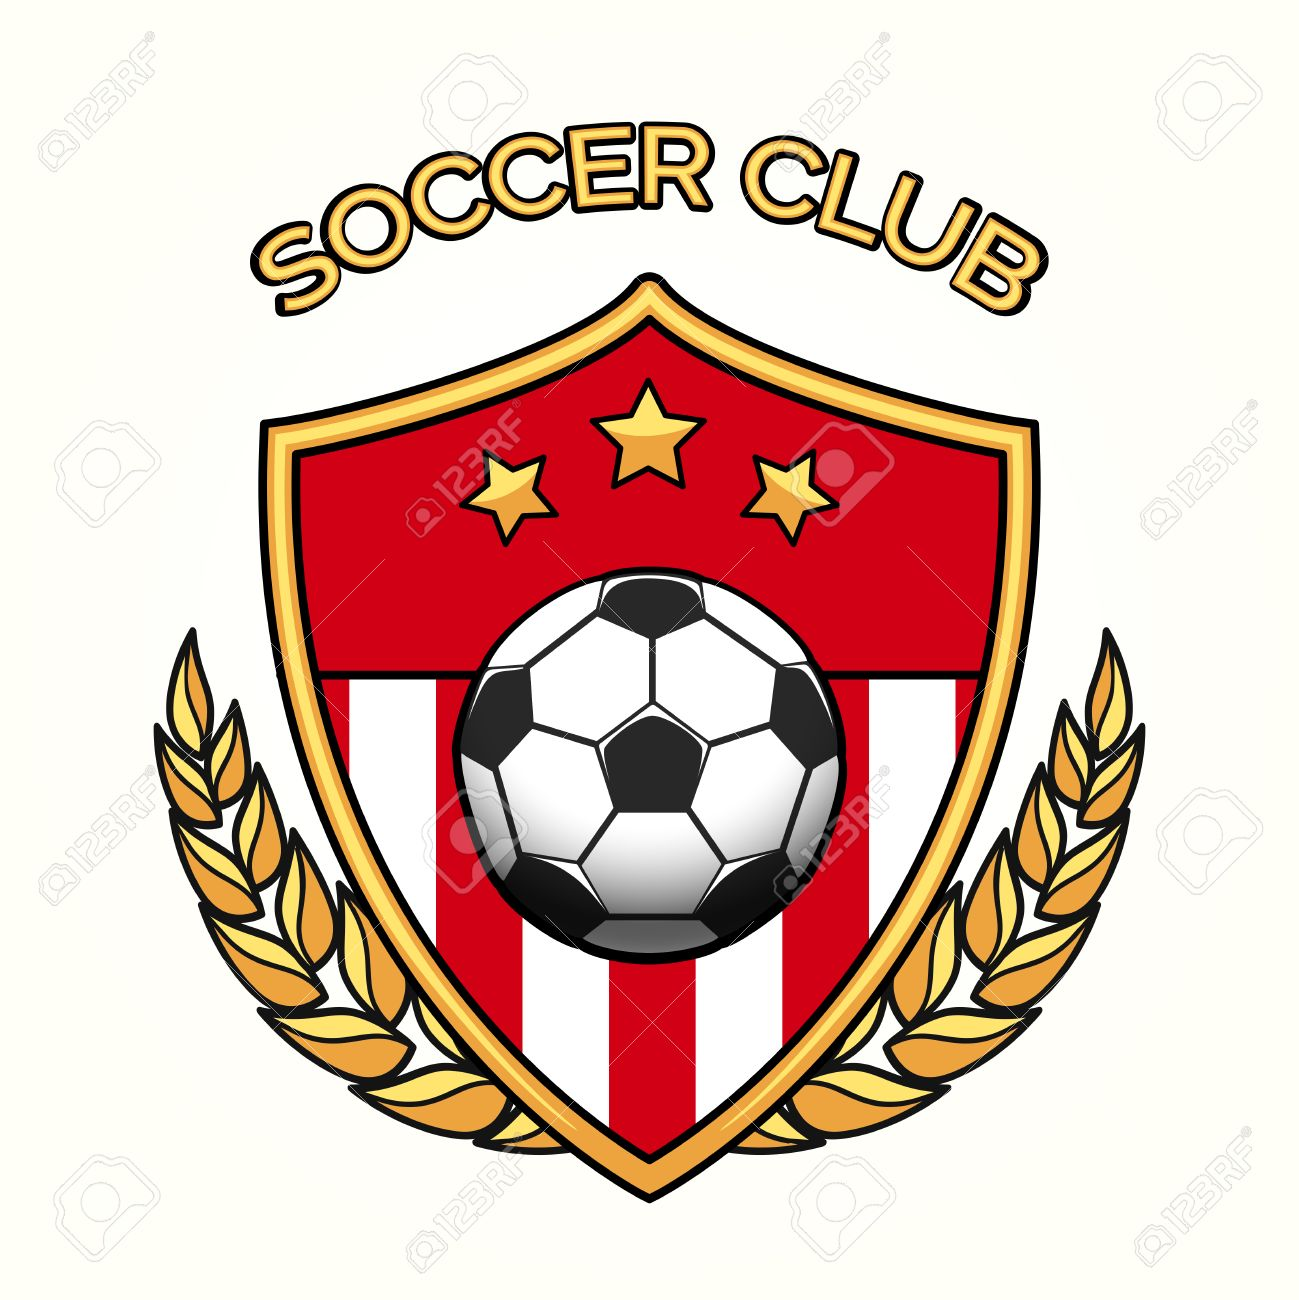 Vector soccer club emblem or football sports team logo isolated on white background - 62625349